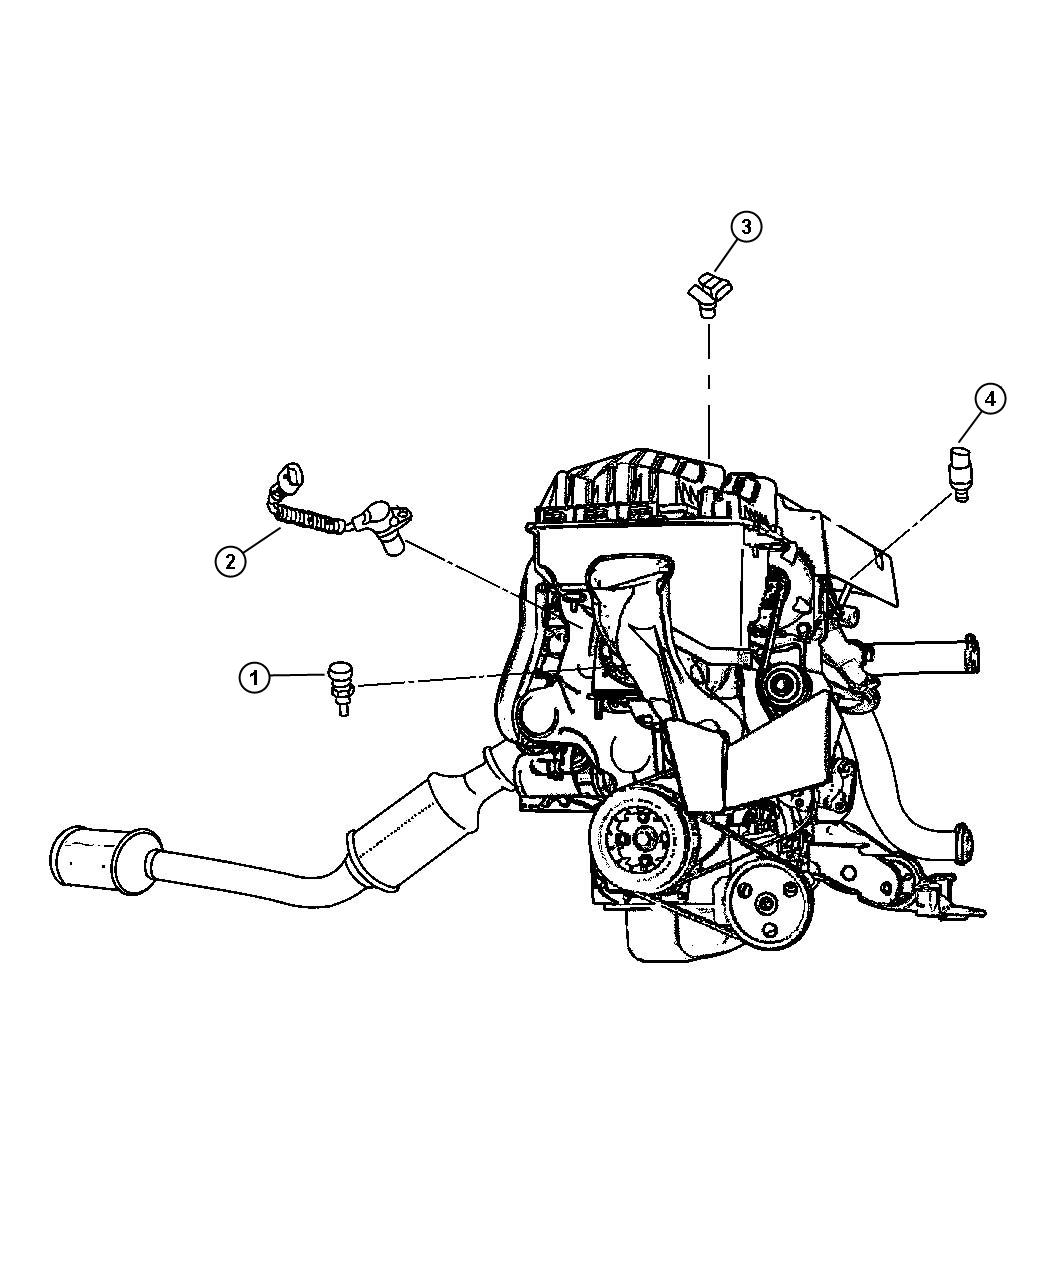 gm 3400 wiring diagram  gm  free engine image for user